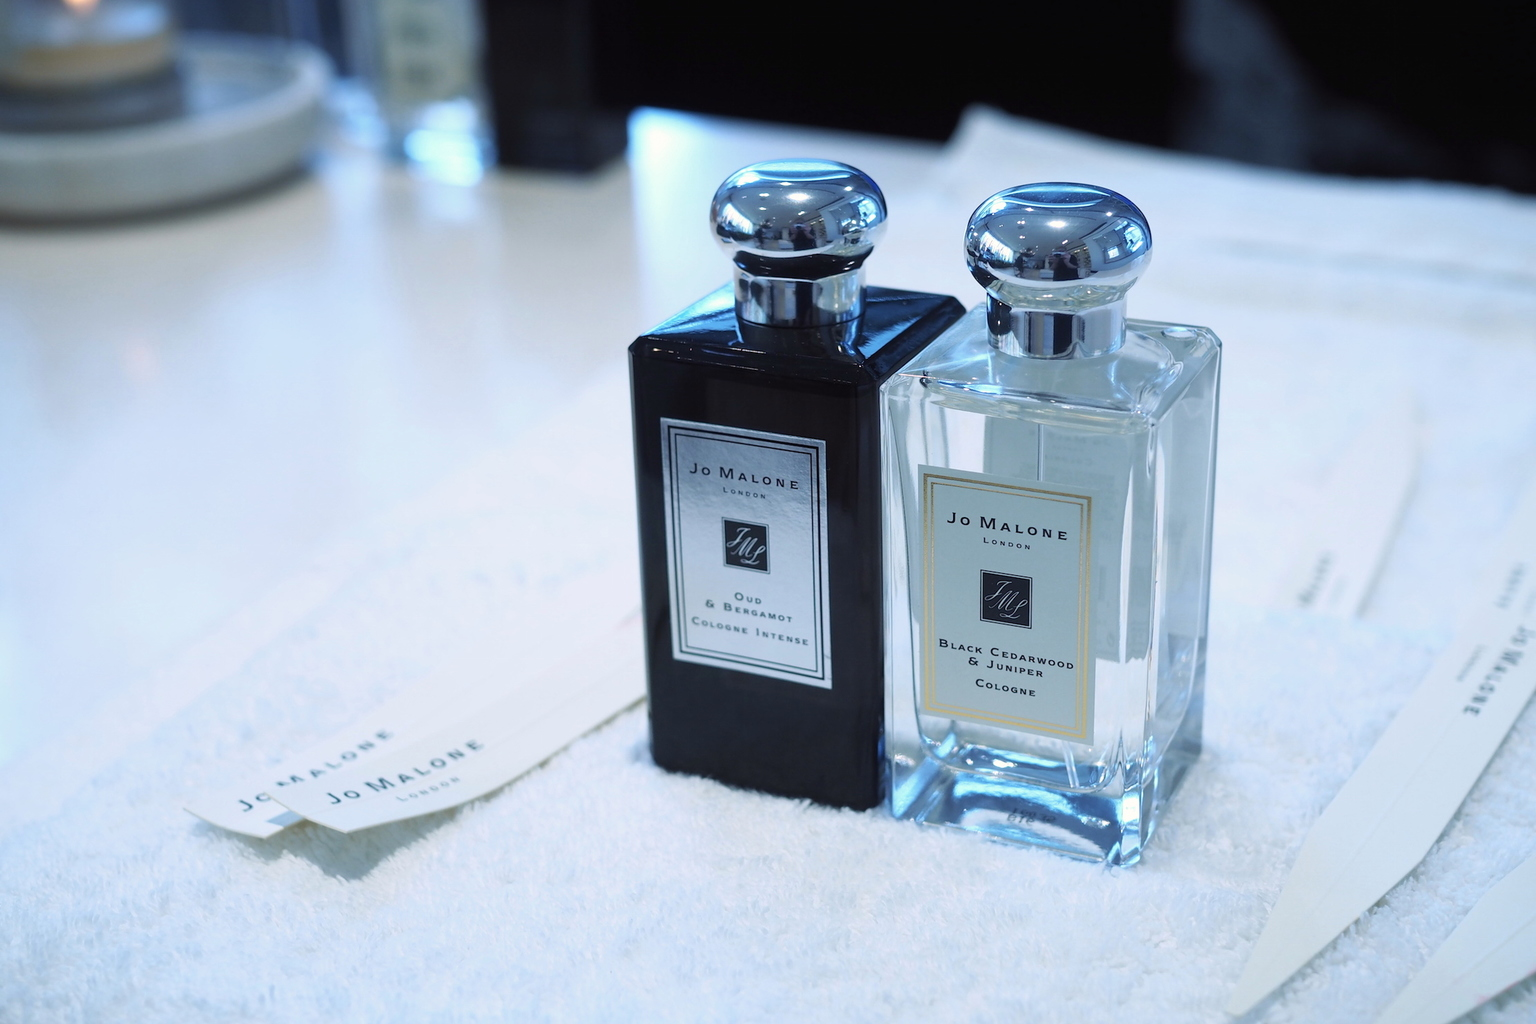 THE ART OF FRAGRANCE COMBINING